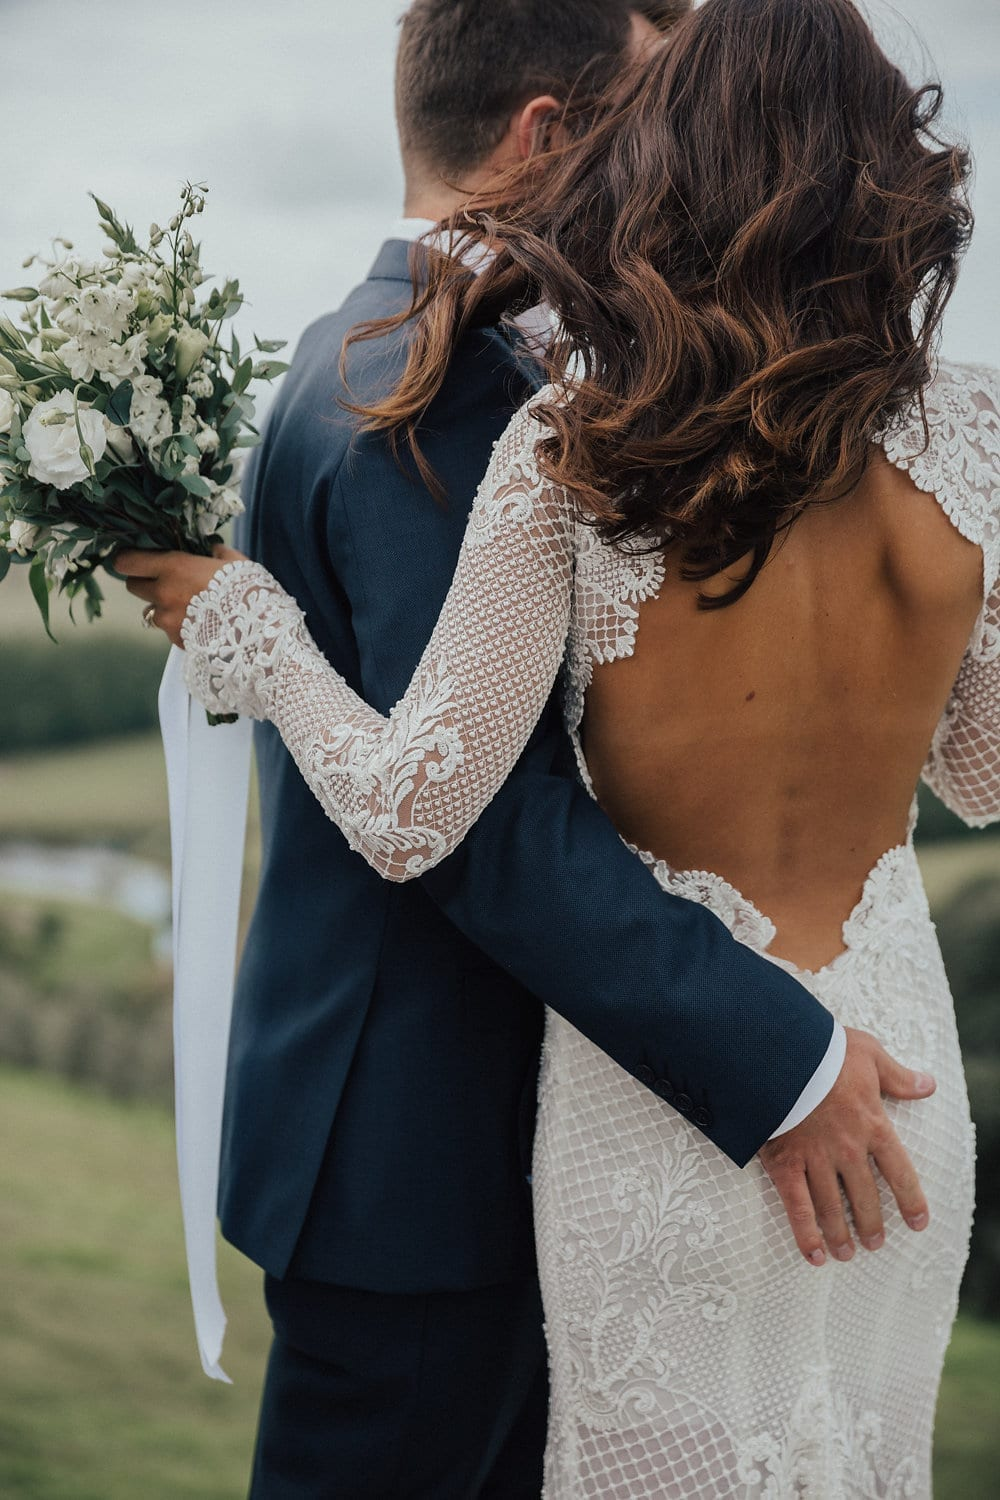 Real Weddings | Vinka Design | Real Brides Wearing Vinka Gowns | Nicole and Hayden close up of backs showing low back of dress and long sleeves